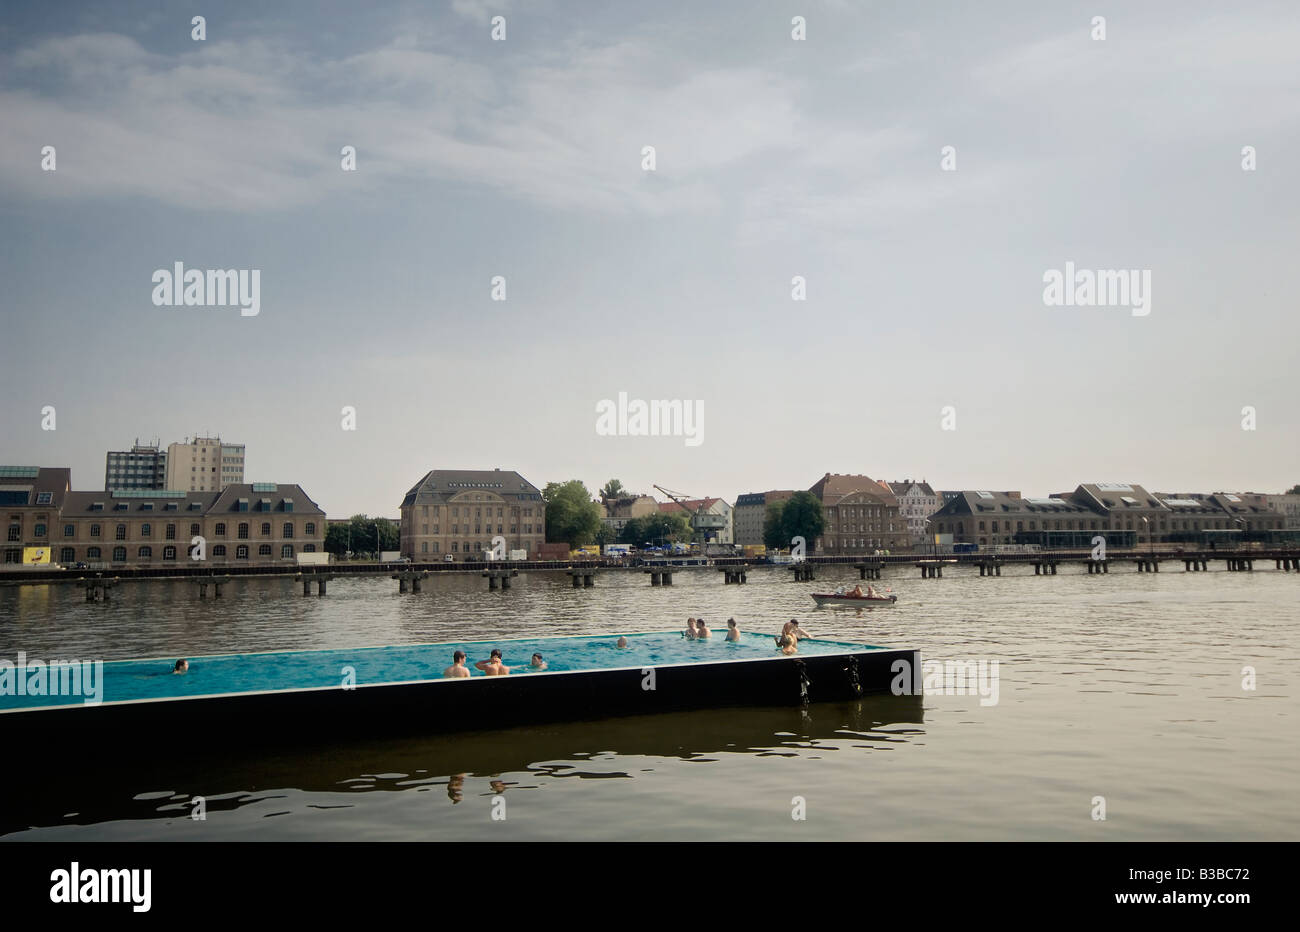 Outdoor Swimming Pool Berlin Badeschiff Berlin Germany Stock Photos And Badeschiff Berlin